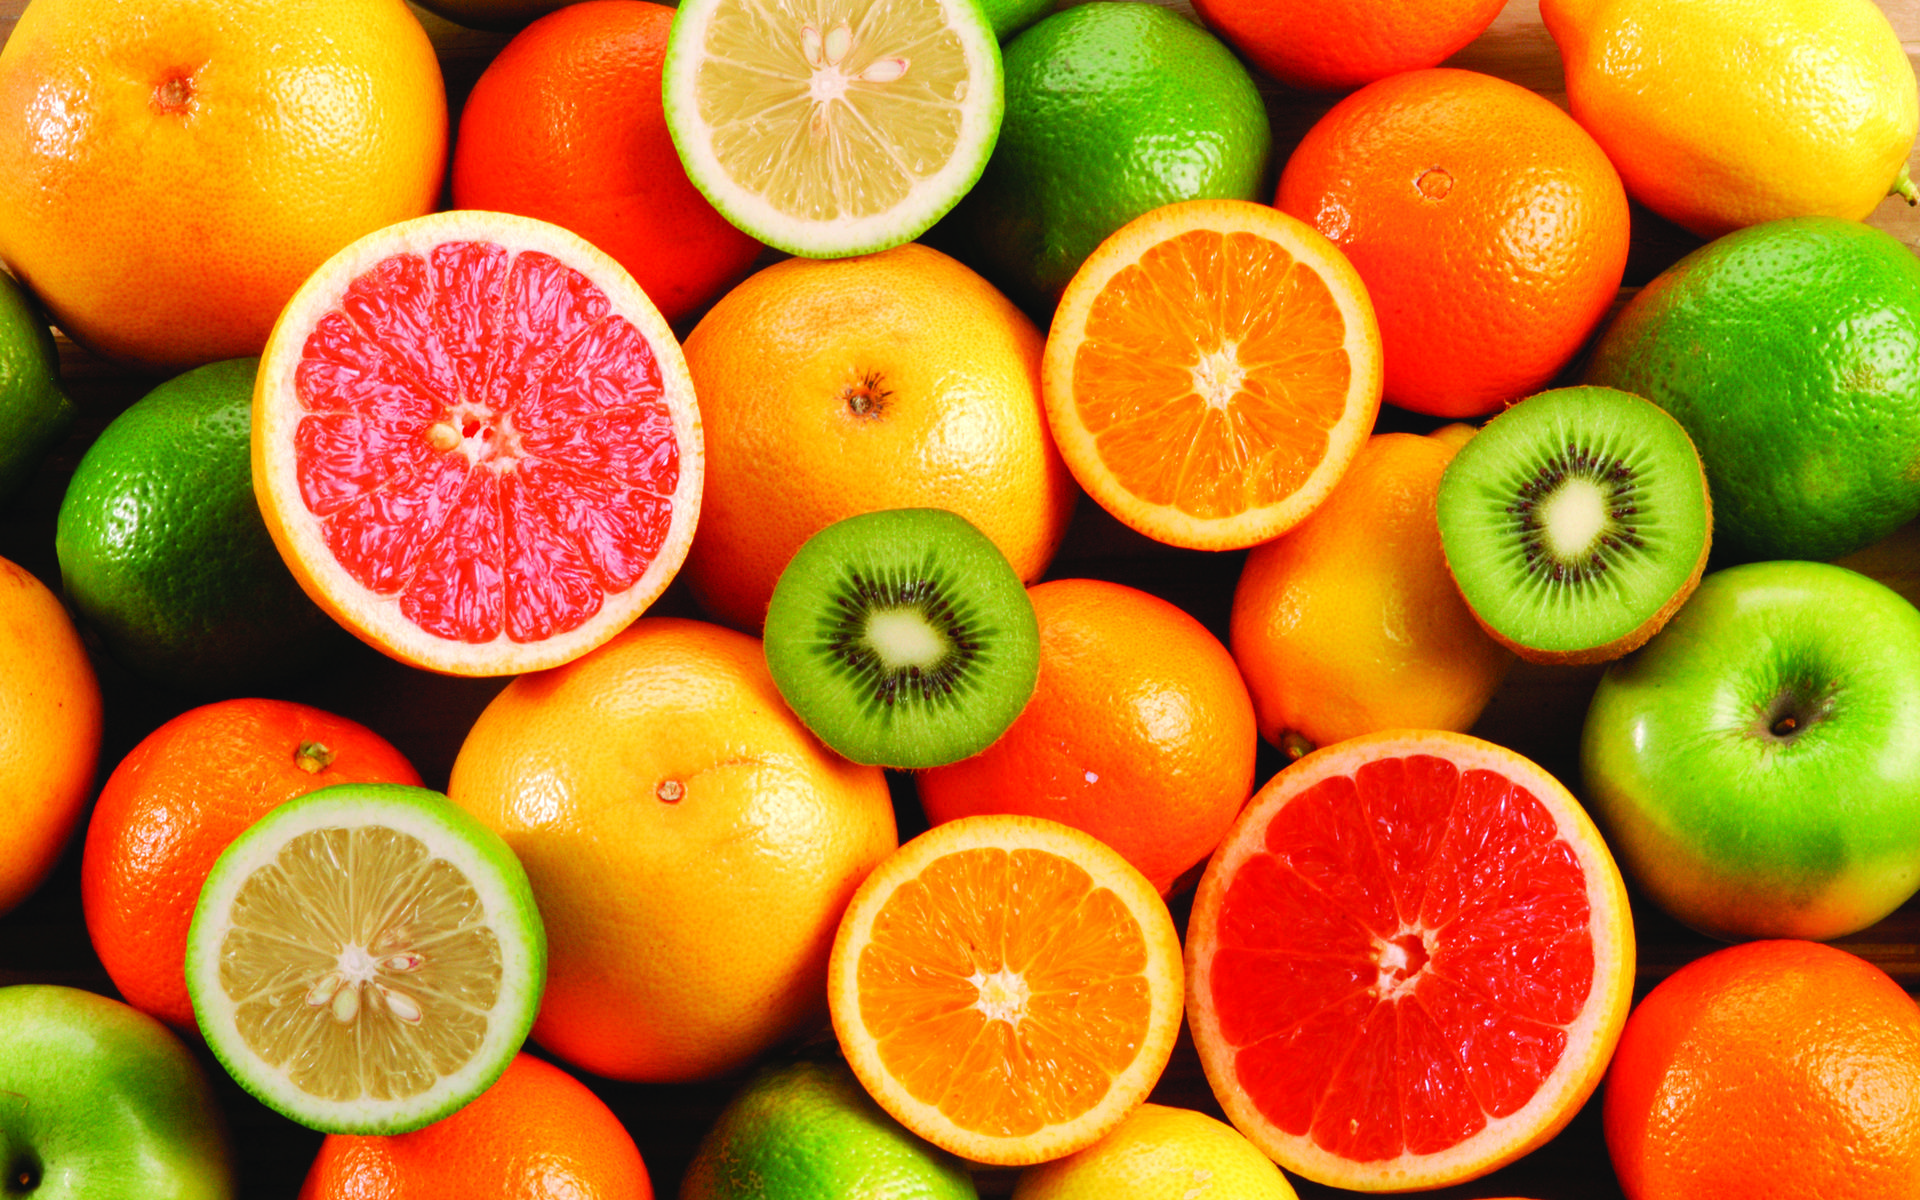 Wallpaper of fruits - Wallpapers For Fruit Wallpaper Tumblr